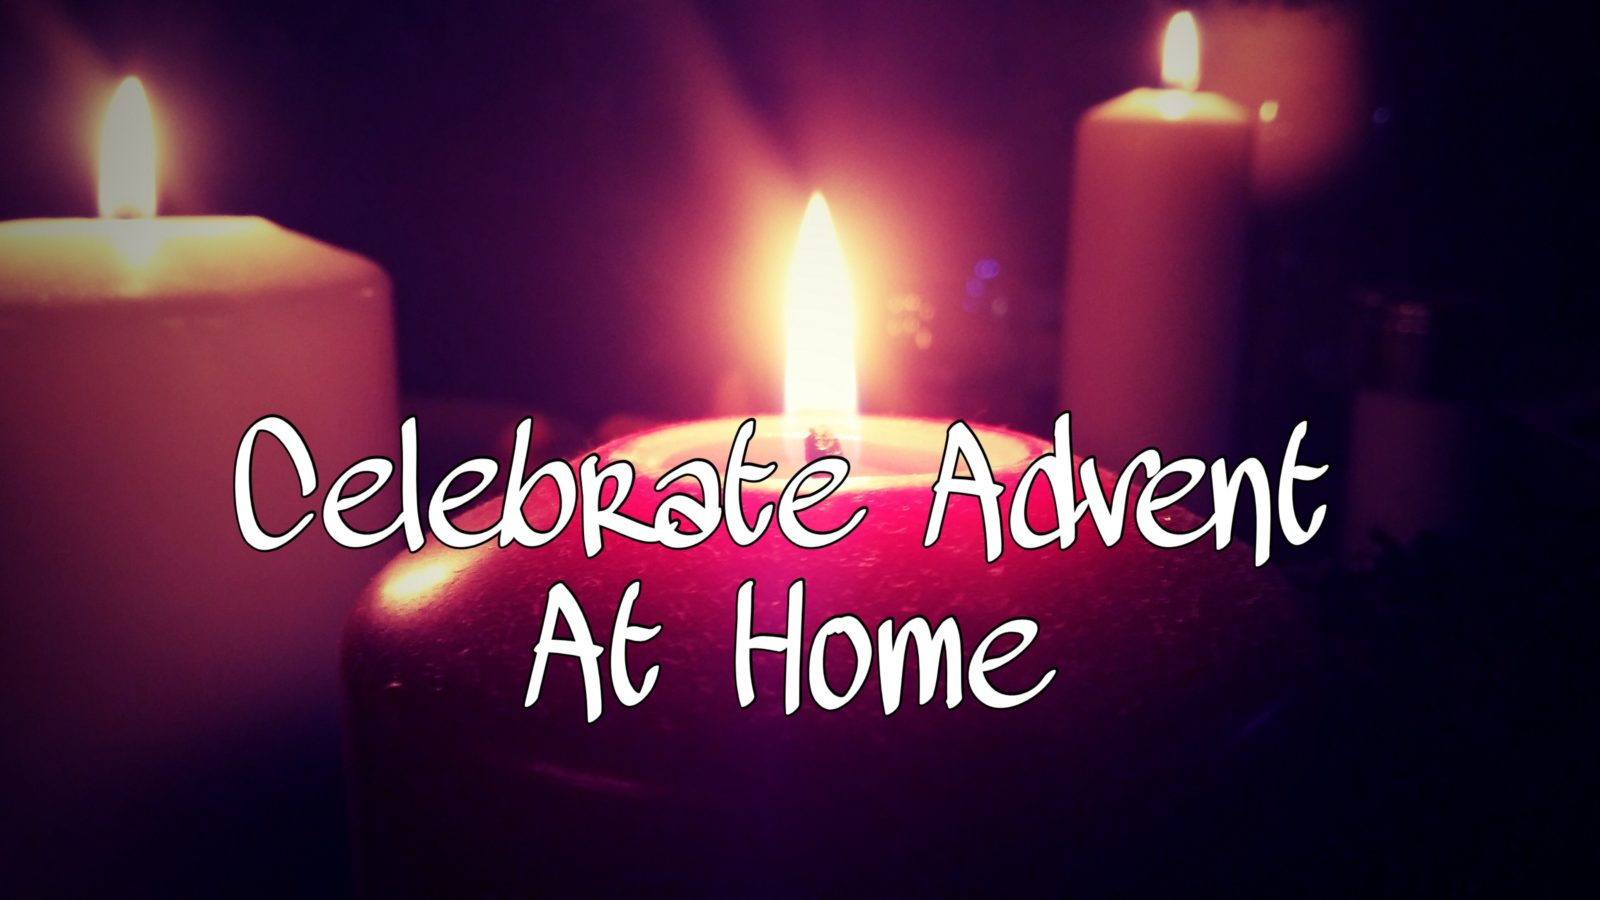 Celebrate Advent at Home